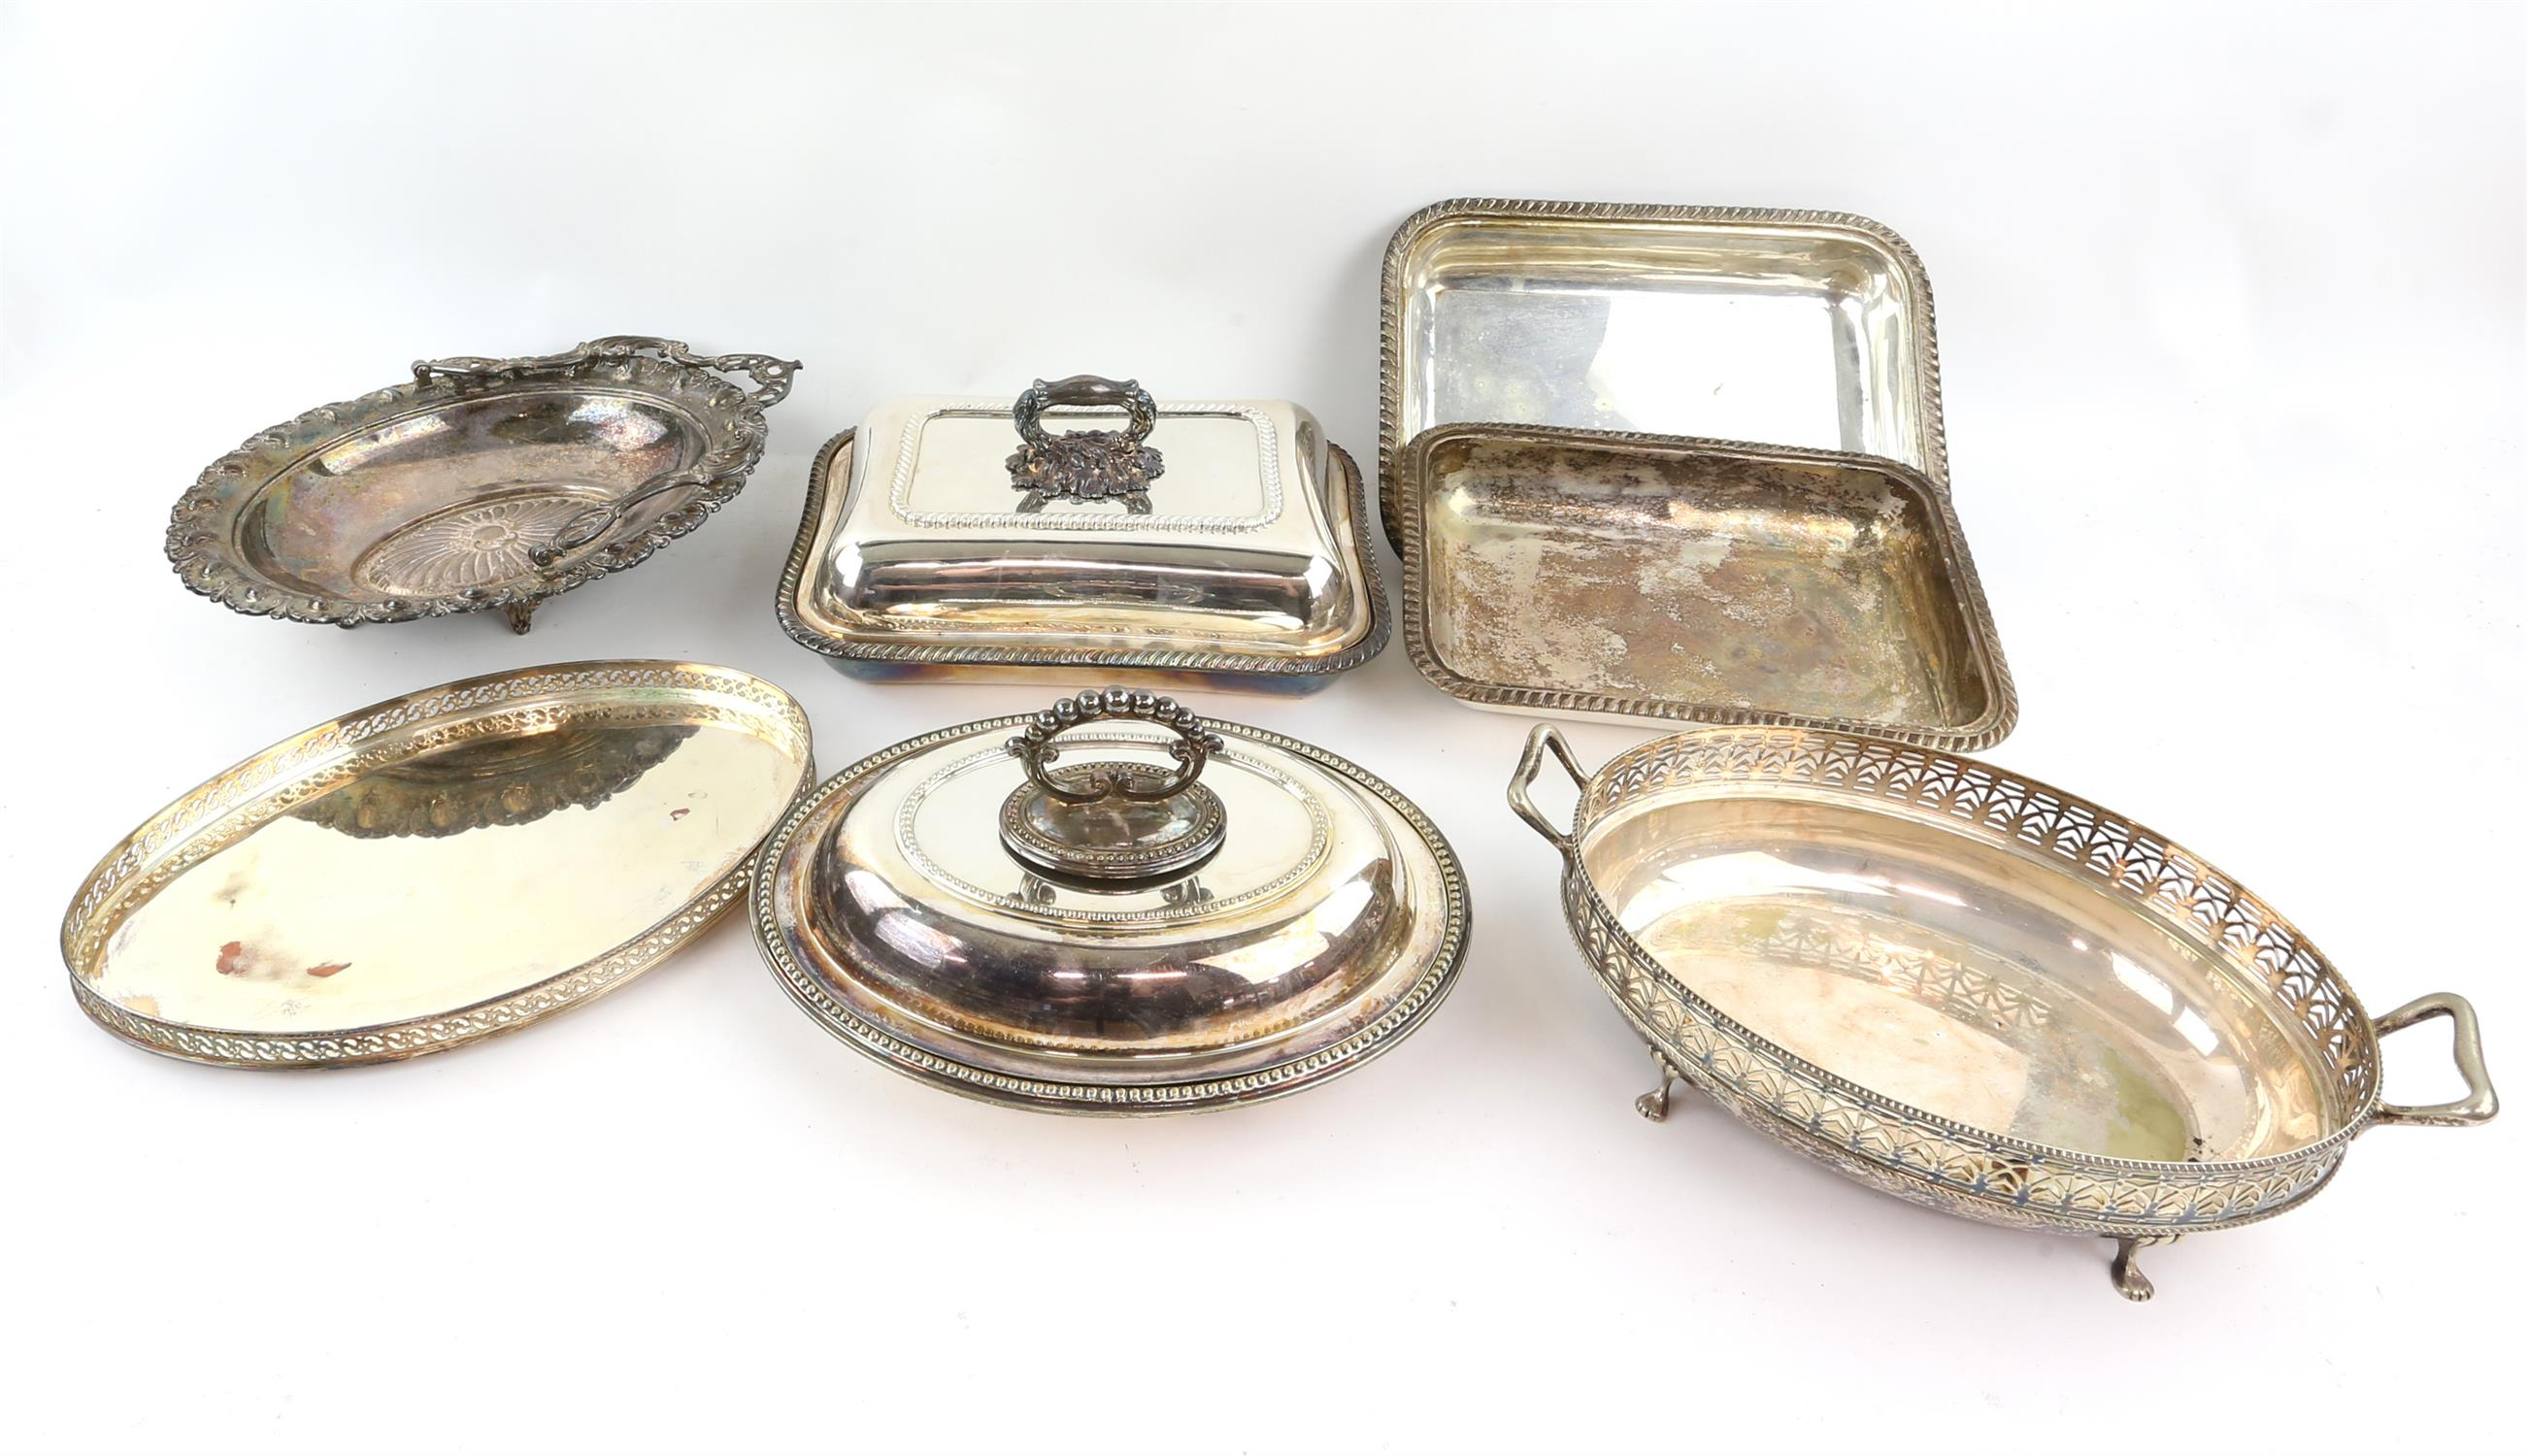 Two entree dishes and various plated items - Image 2 of 2